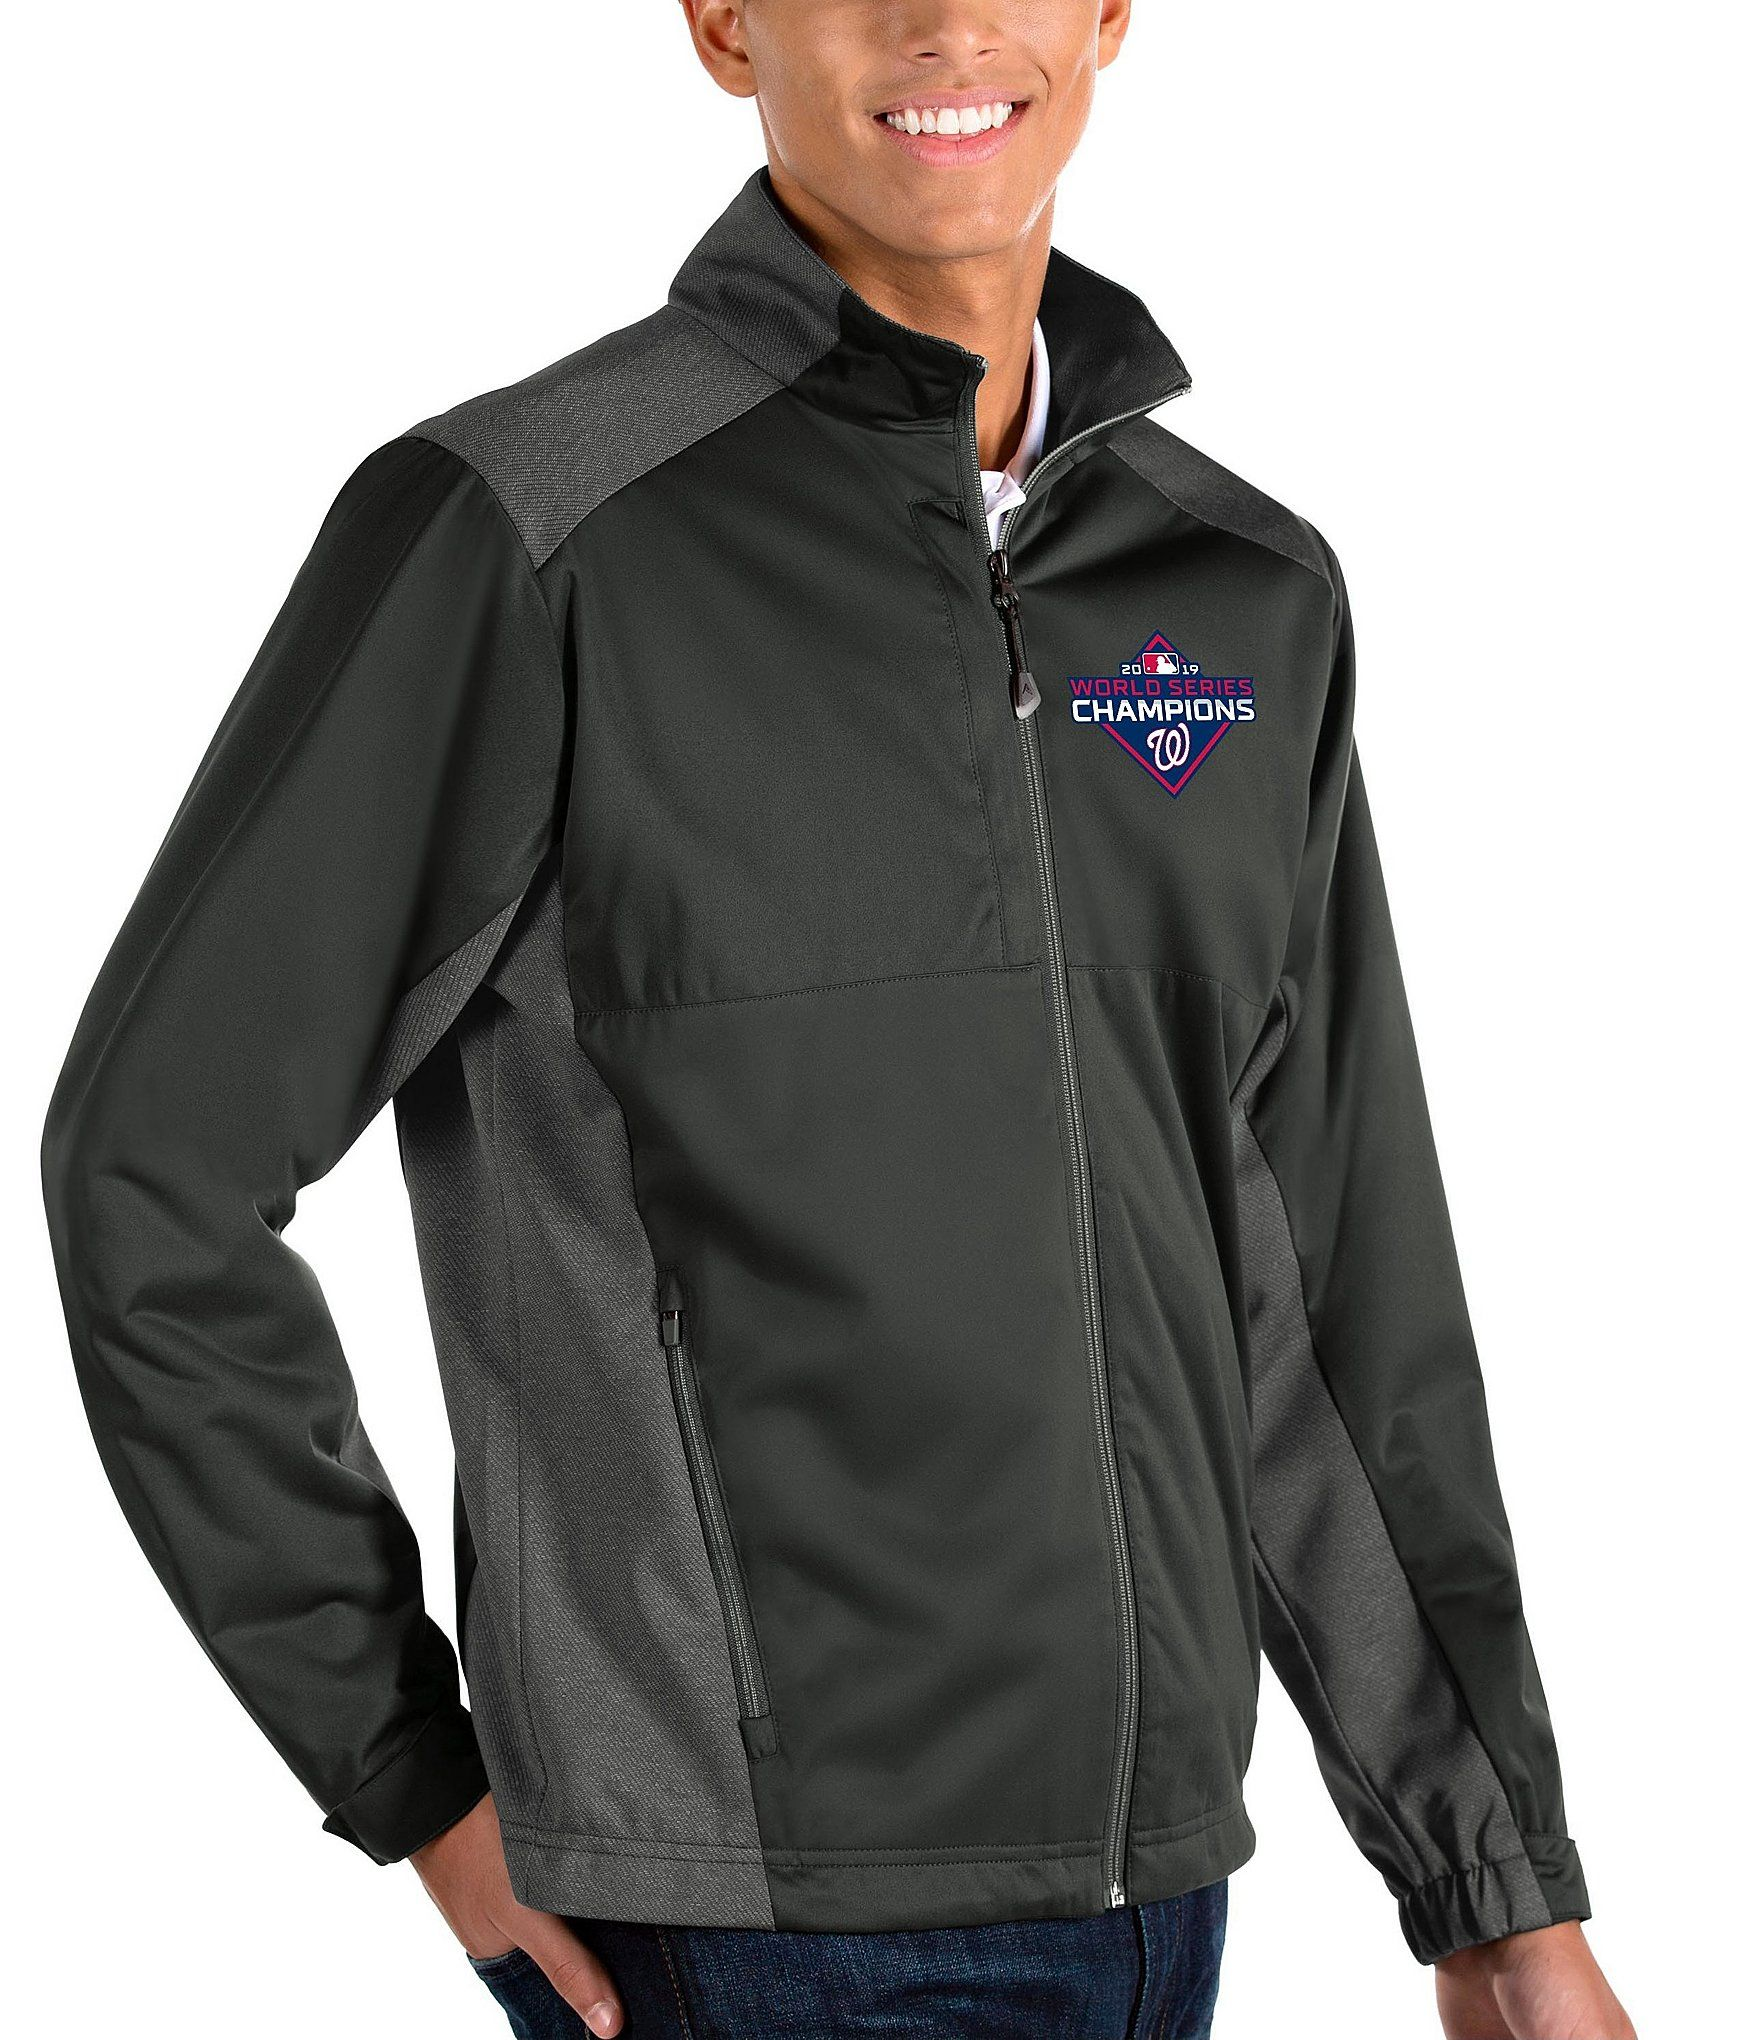 Antigua MLB World Champions Washington Nationals Revolve Full-Zip Waterproof Jacket | Dillard's